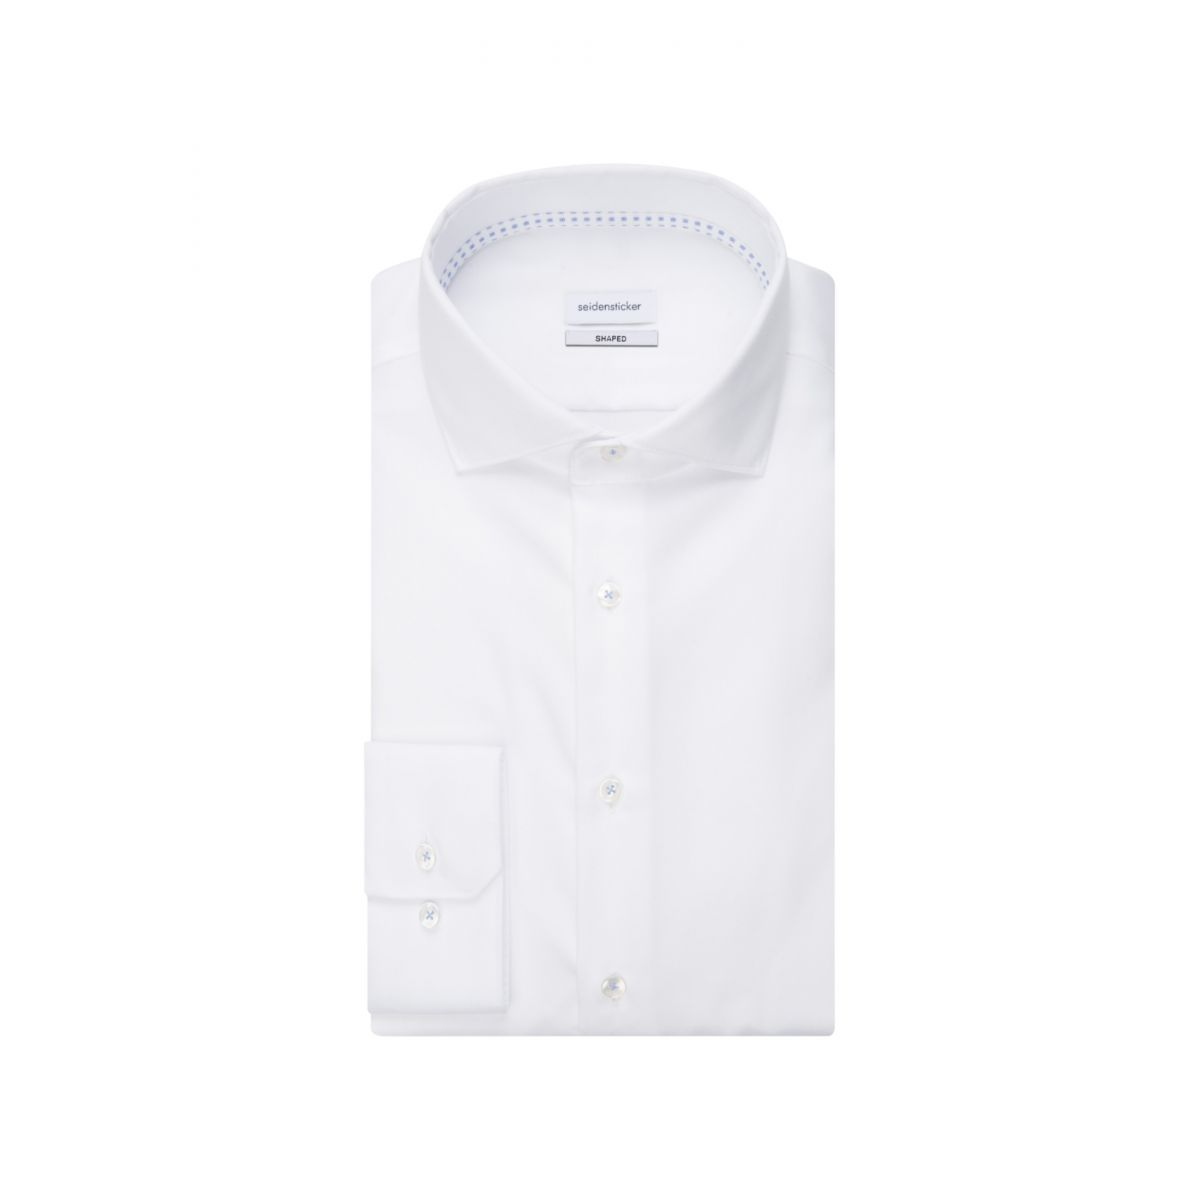 Chemise ajustée blanche manches extra-longues twill col semi-italien